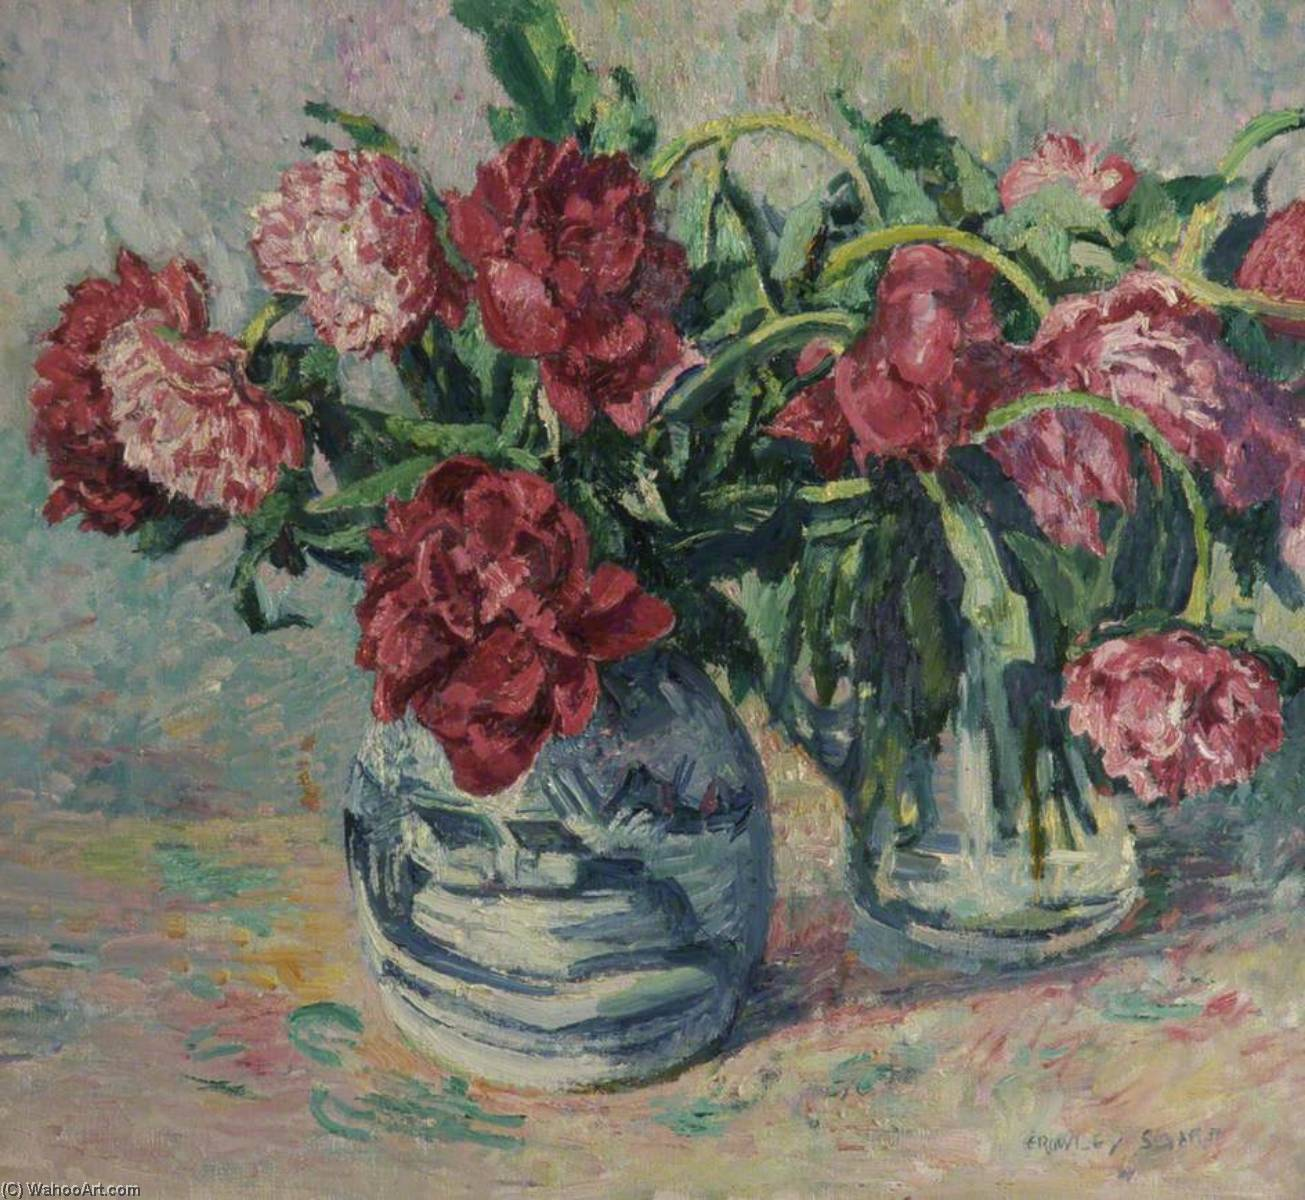 Peonies, Oil On Canvas by Rowley Smart